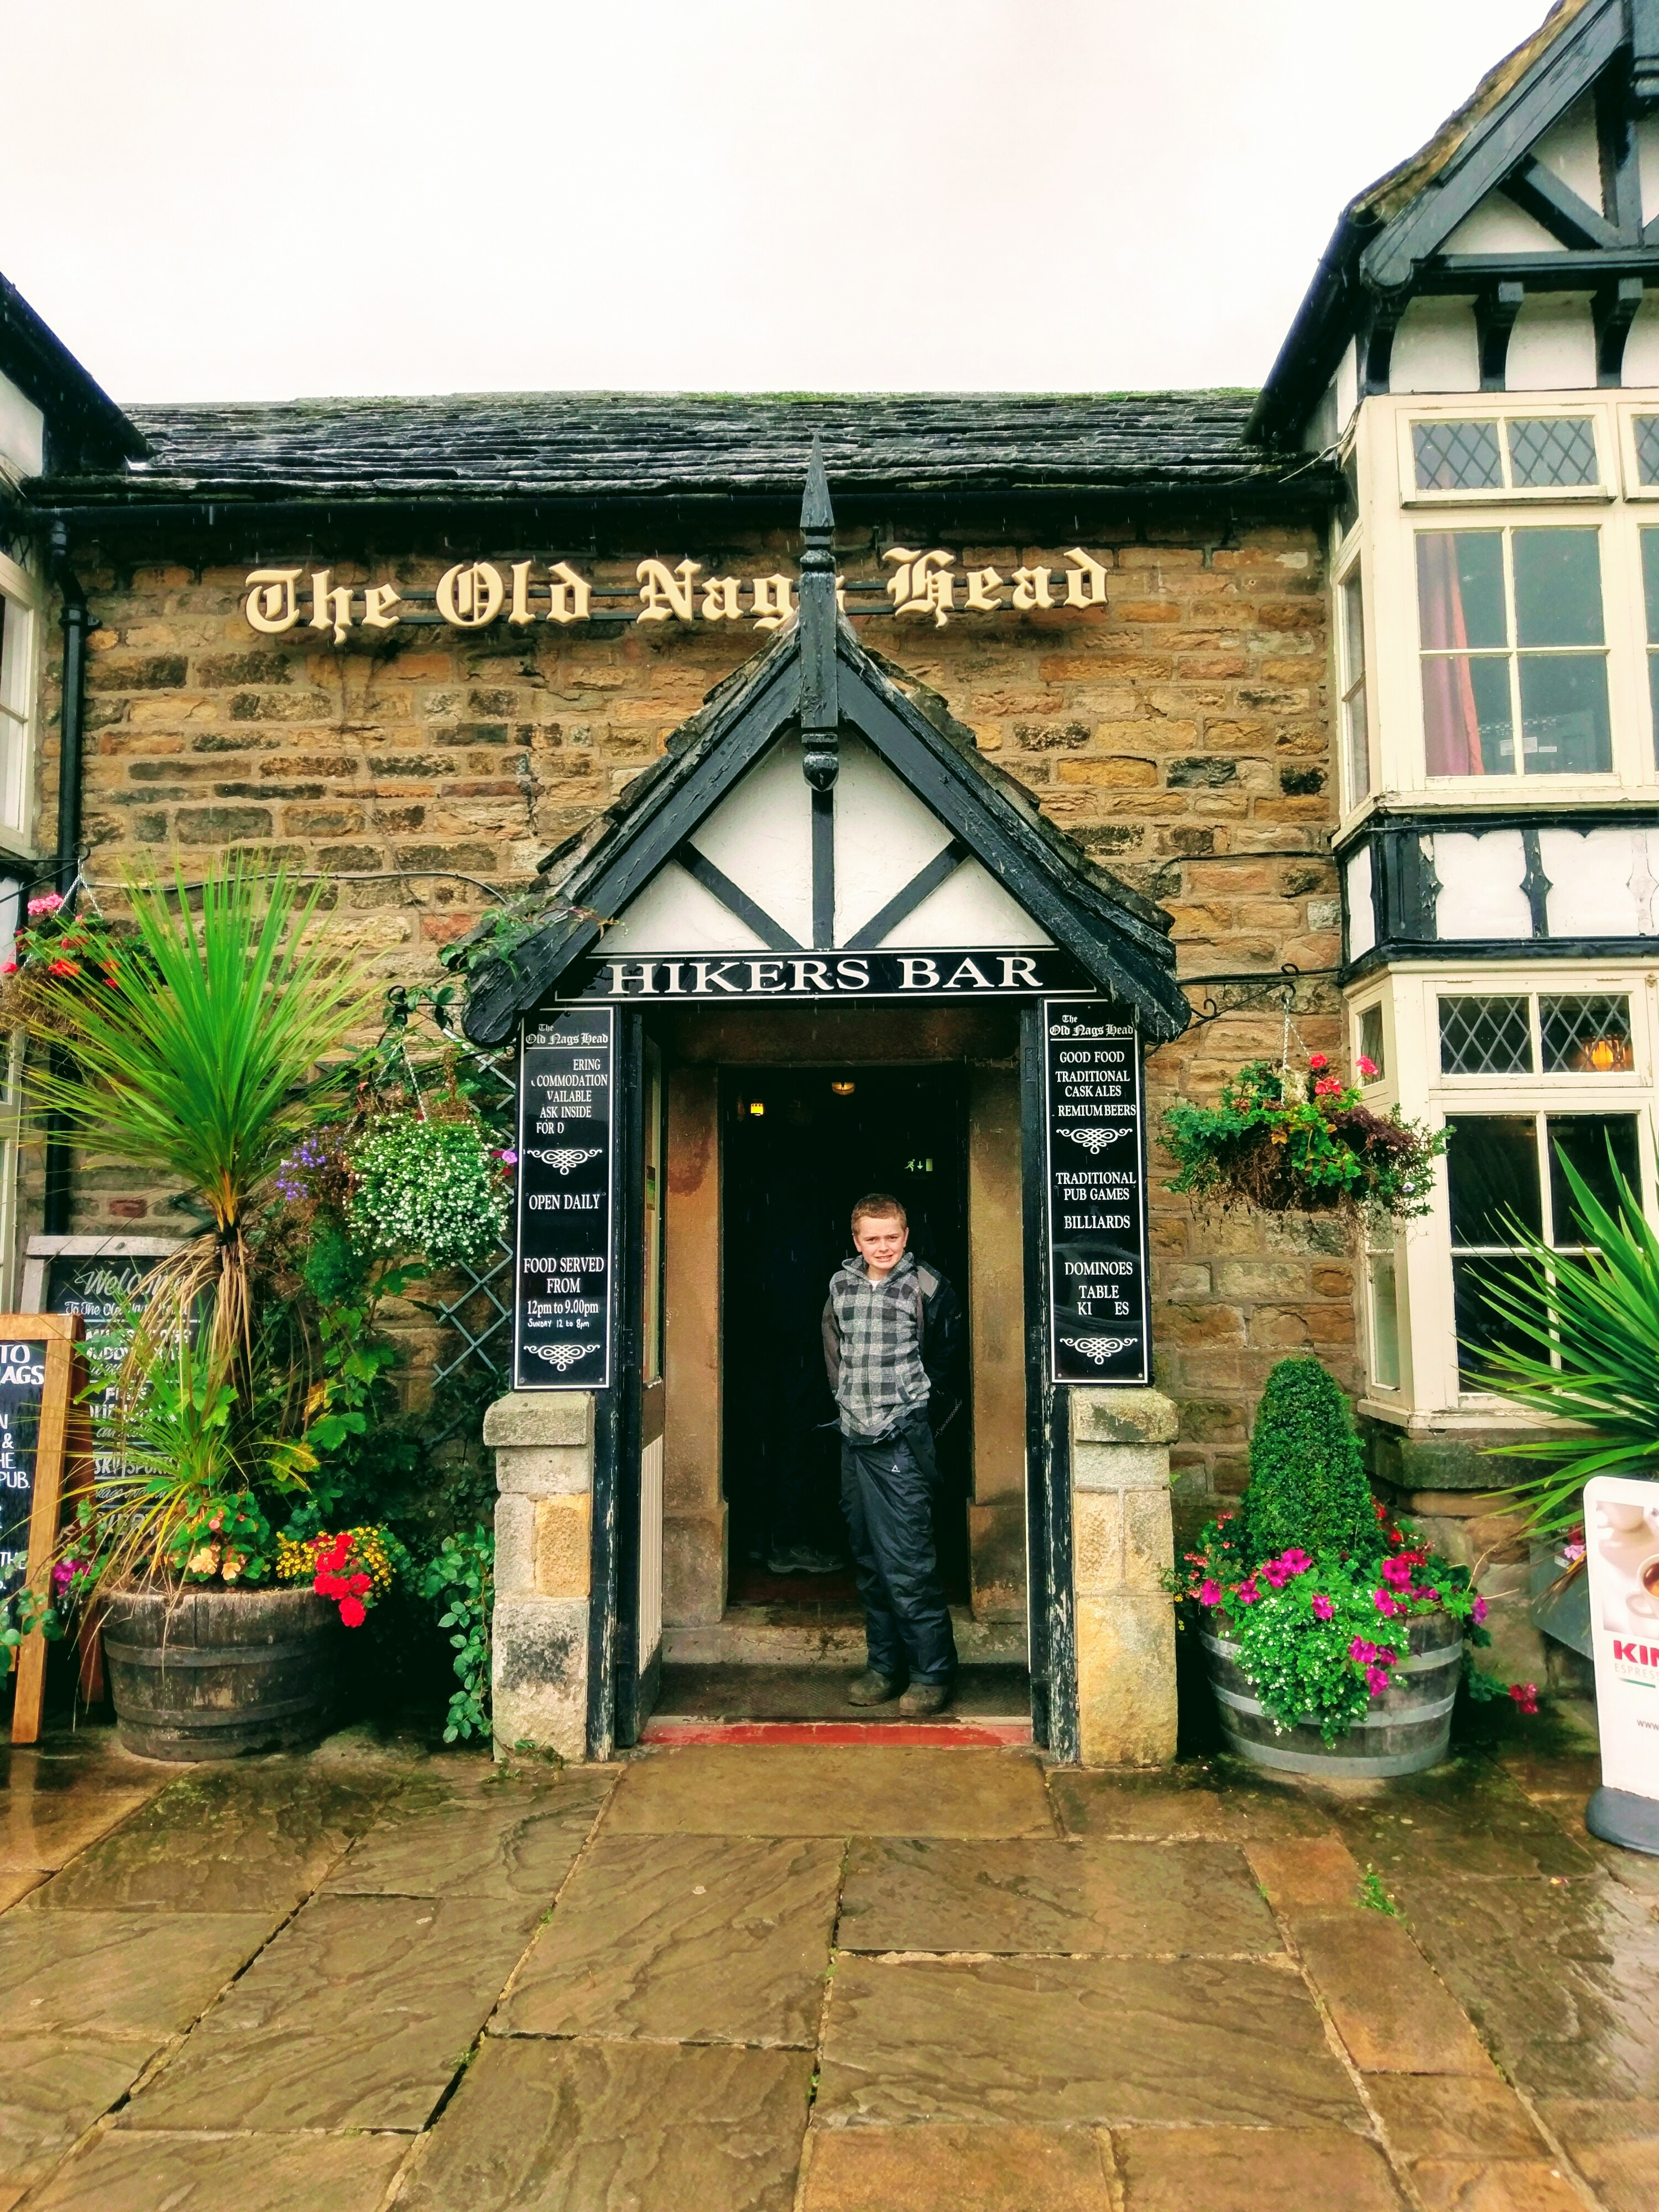 The Old Nags Head, Edale, UK